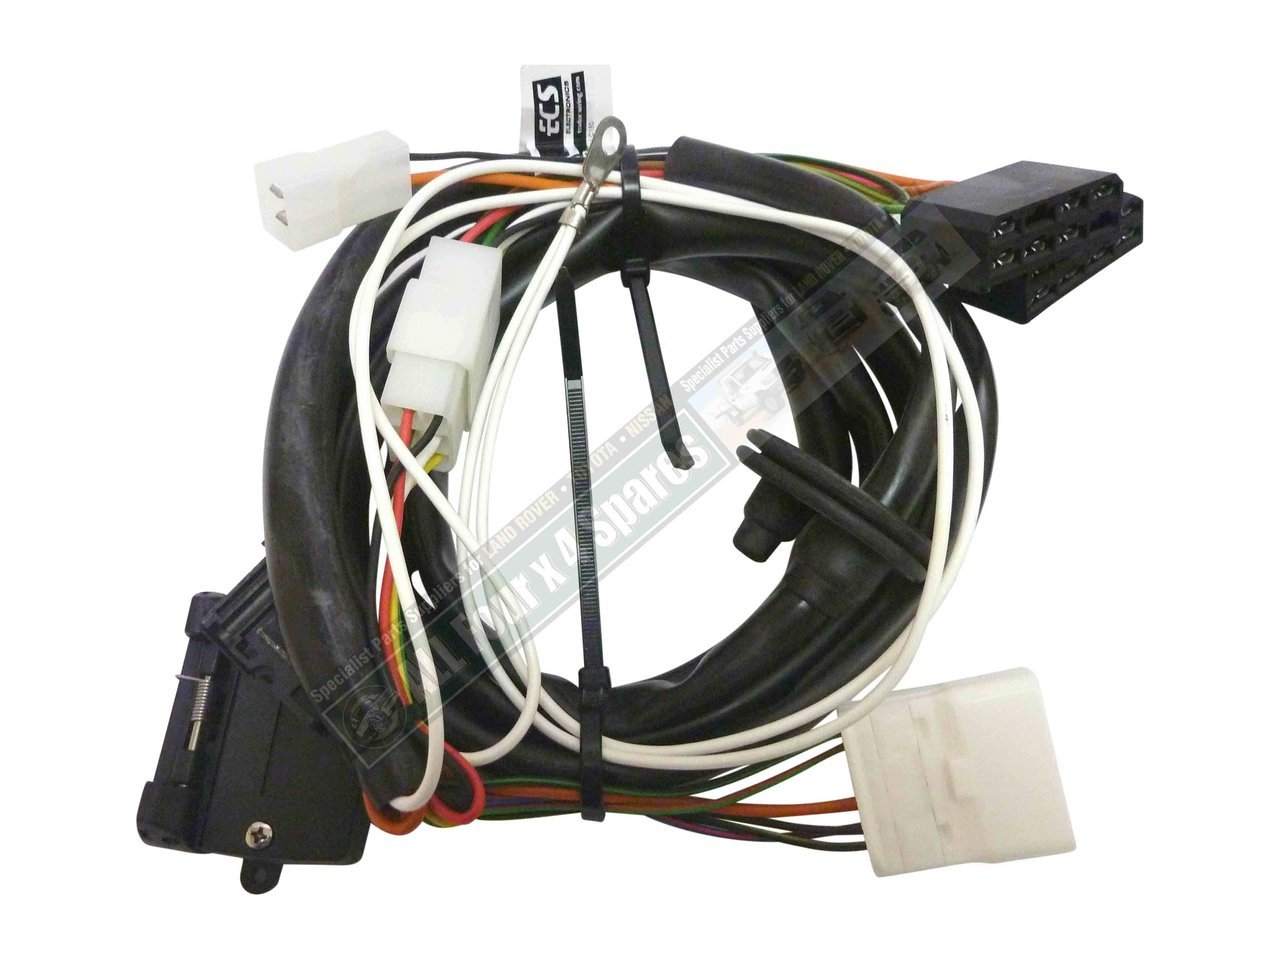 milford towbar wiring harness suitable for toyota prado 150 rh allfourx4 com au Truck Wiring Harness prado trailer wiring harness